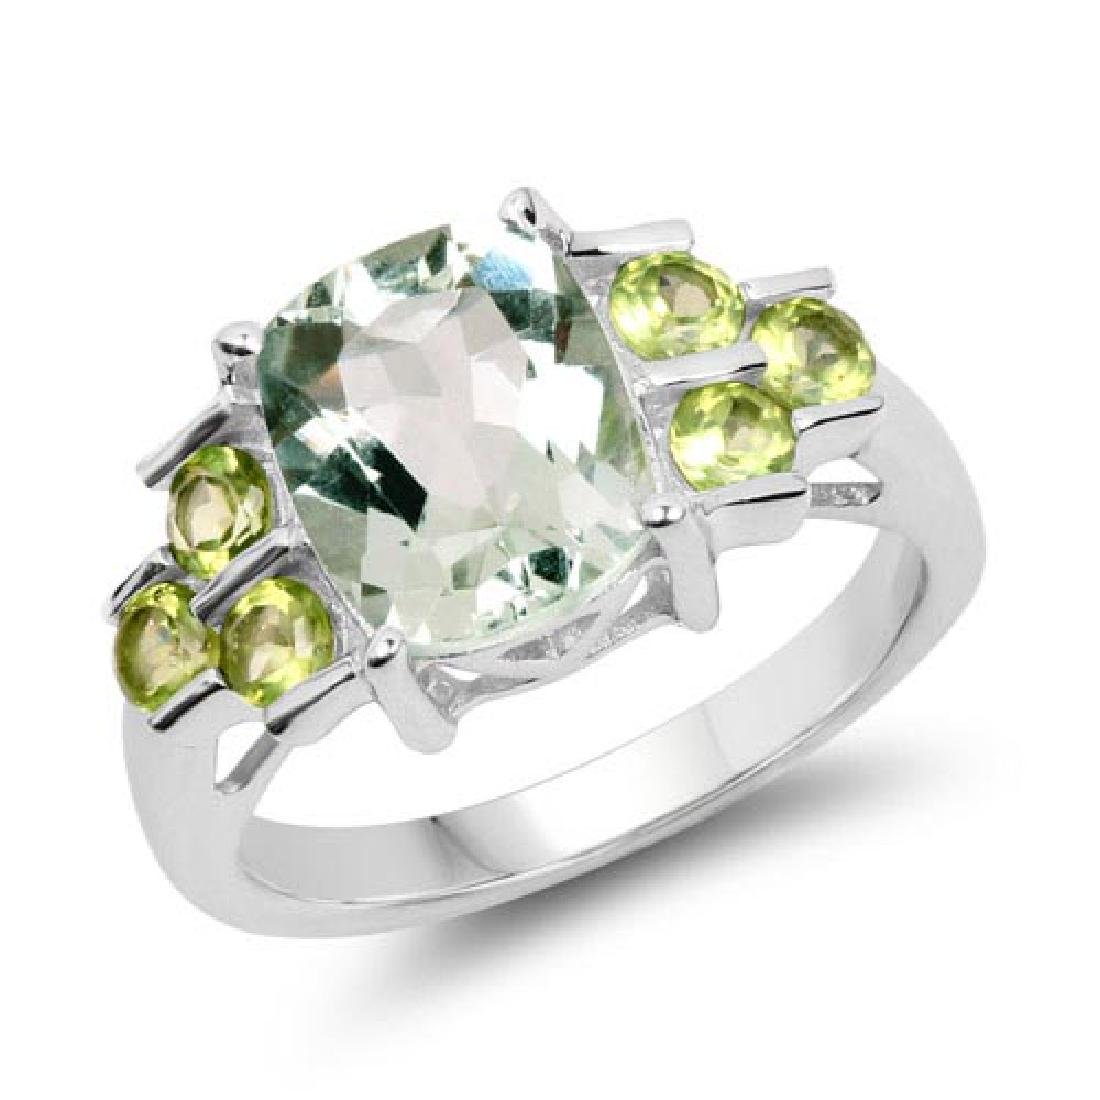 2.85 Carat Genuine Green Amethyst and Peridot .925 Ster